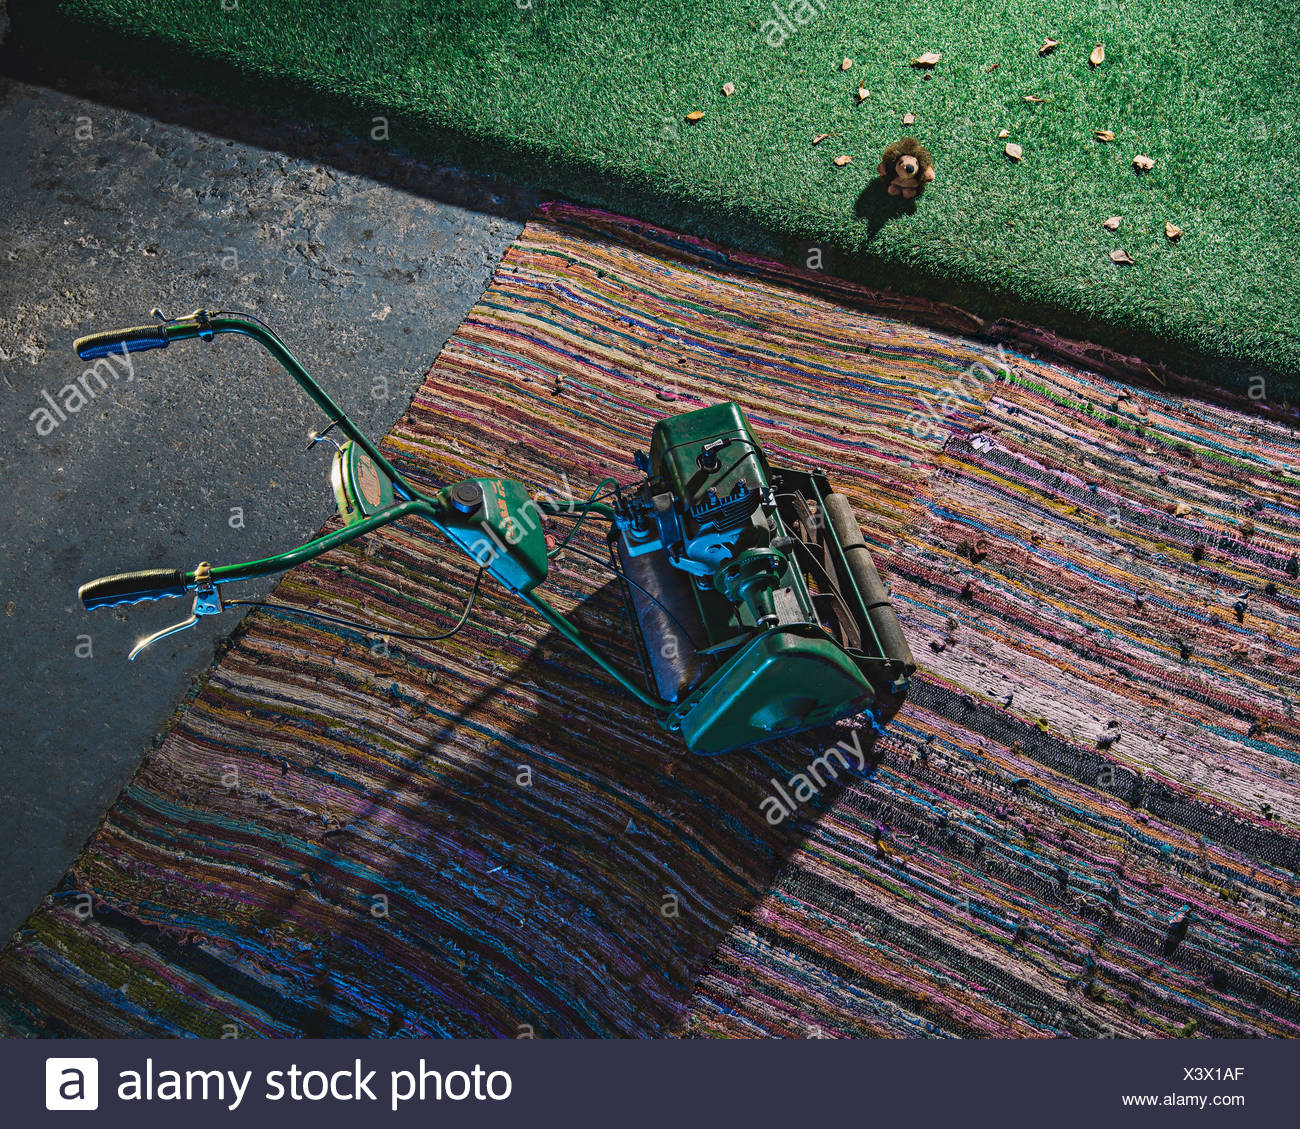 Lawnmower on rug with toy hedgehog - Stock Image